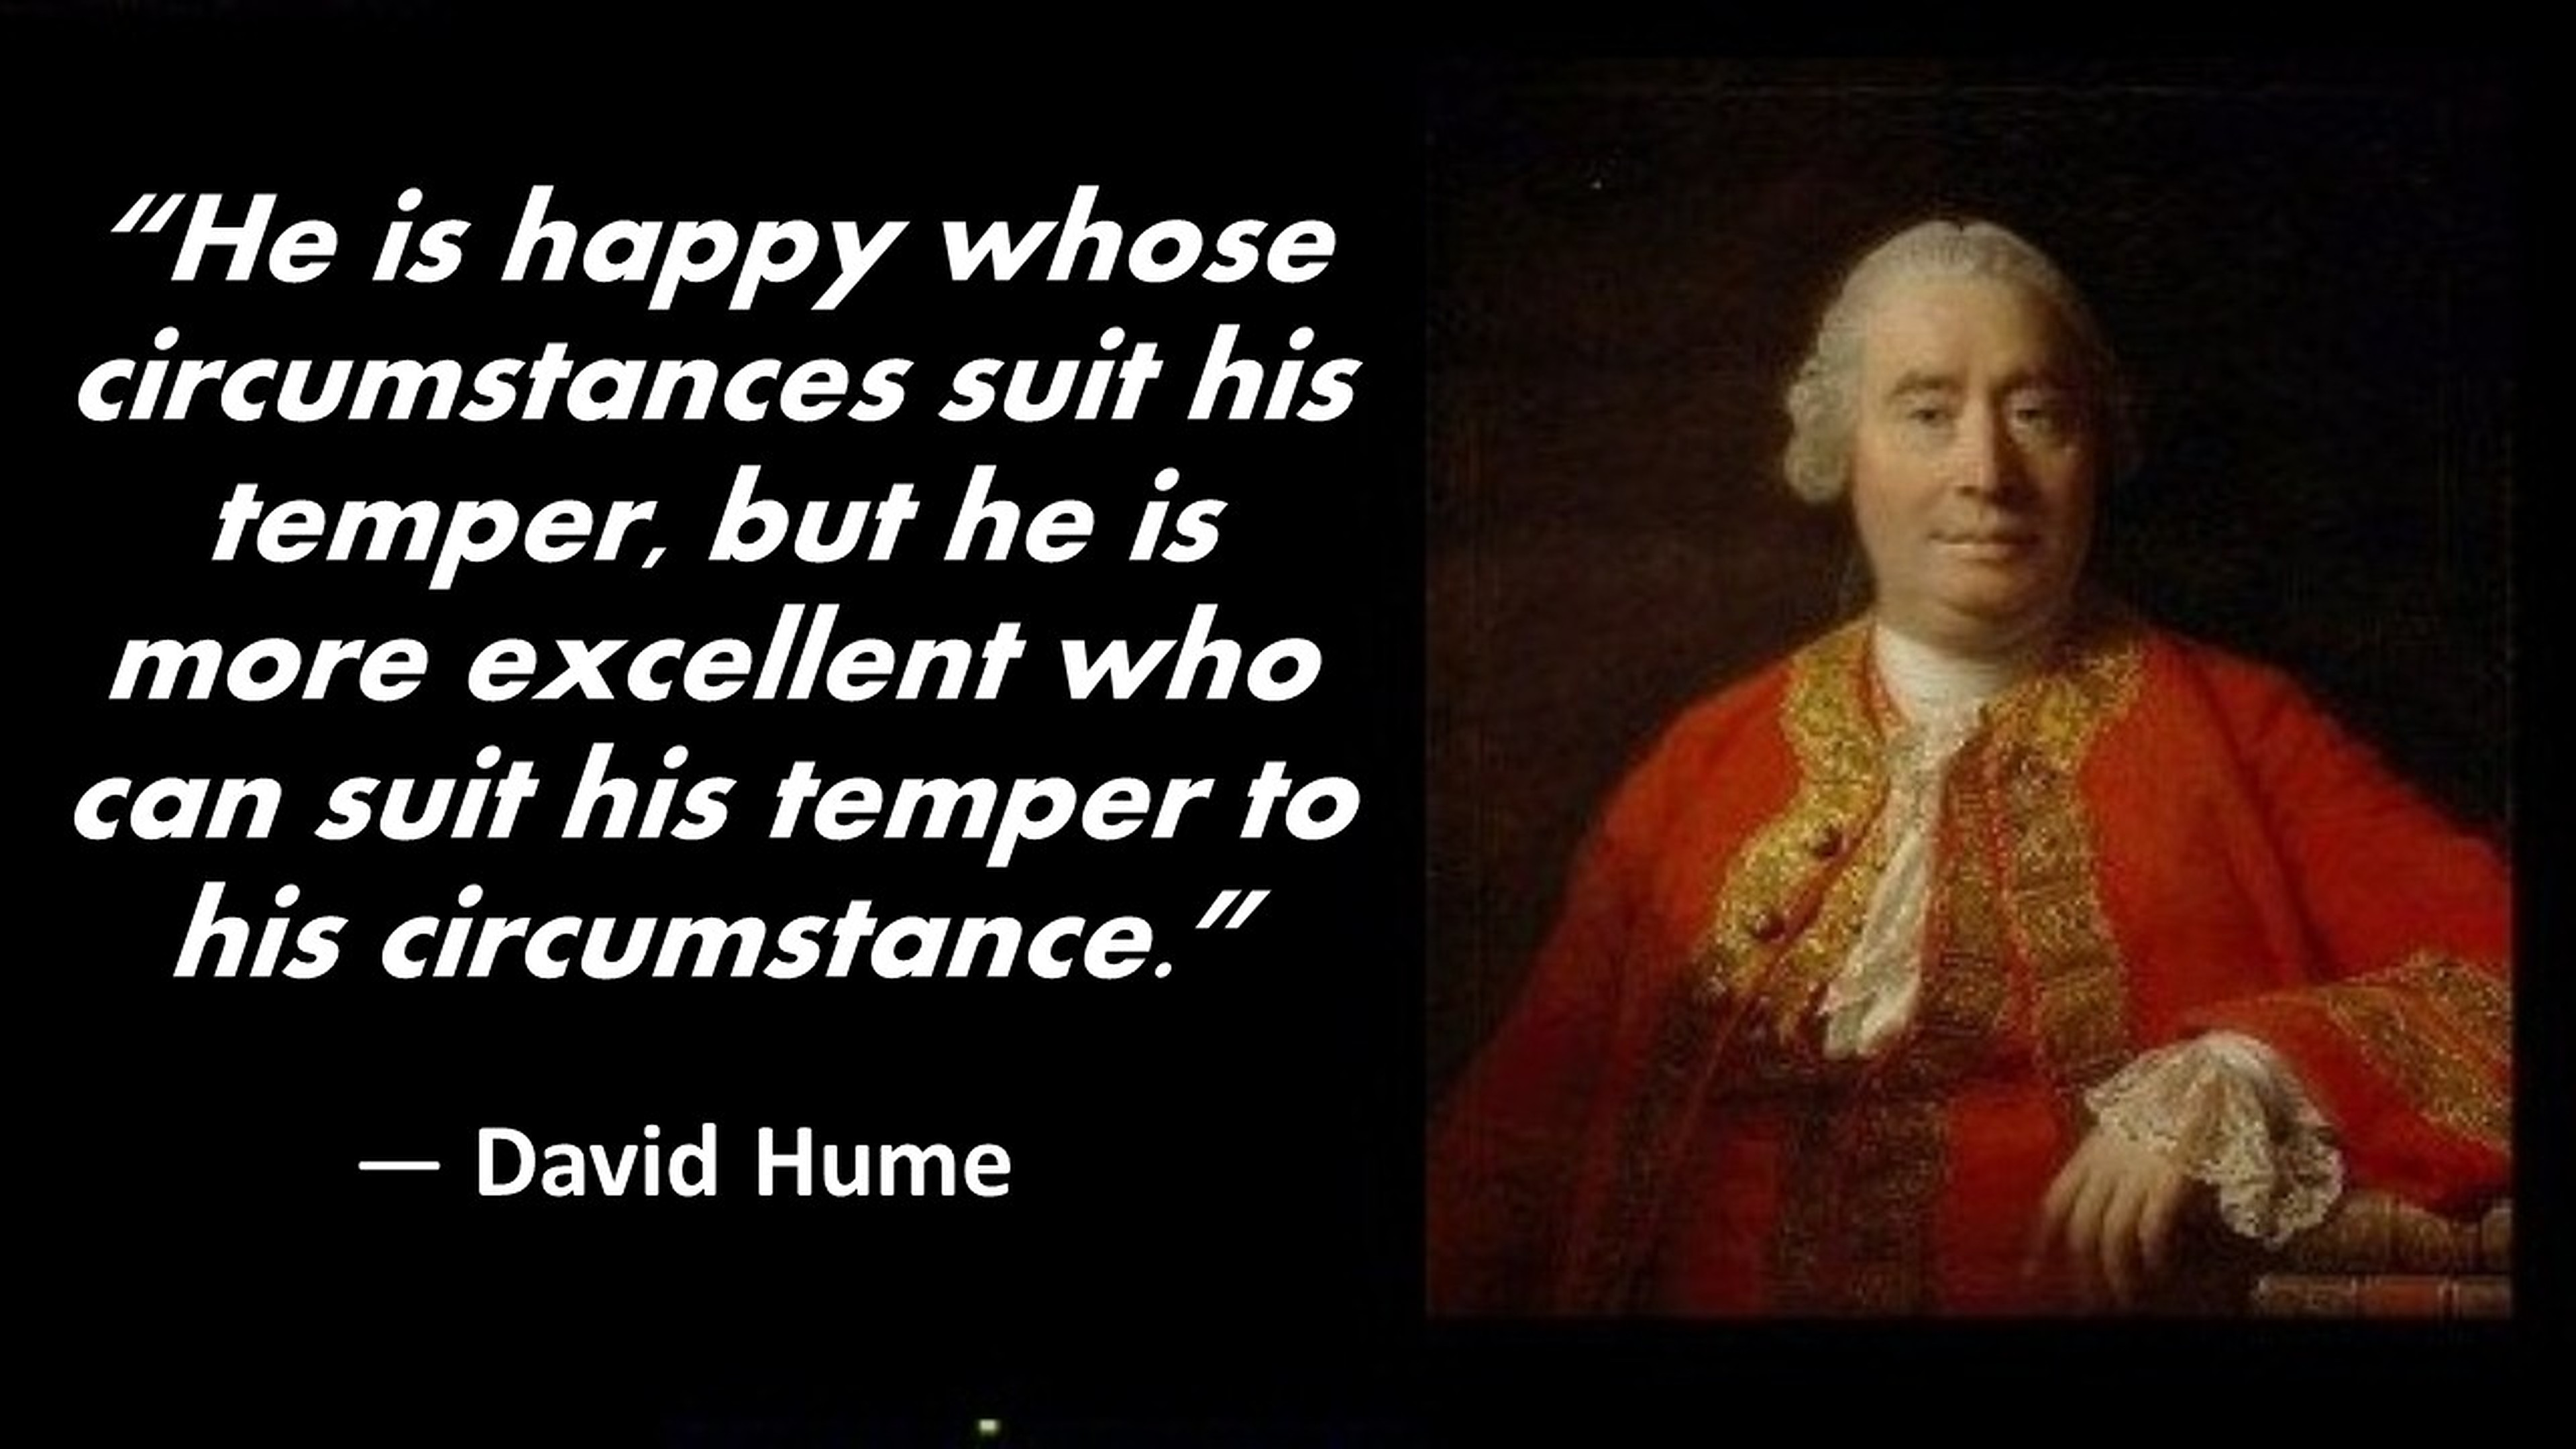 """""""He is happy whose circumstances suit his temper, but he is more excellent who can suit his temper to his circumstance."""" ― David Hume [3840×2160]"""